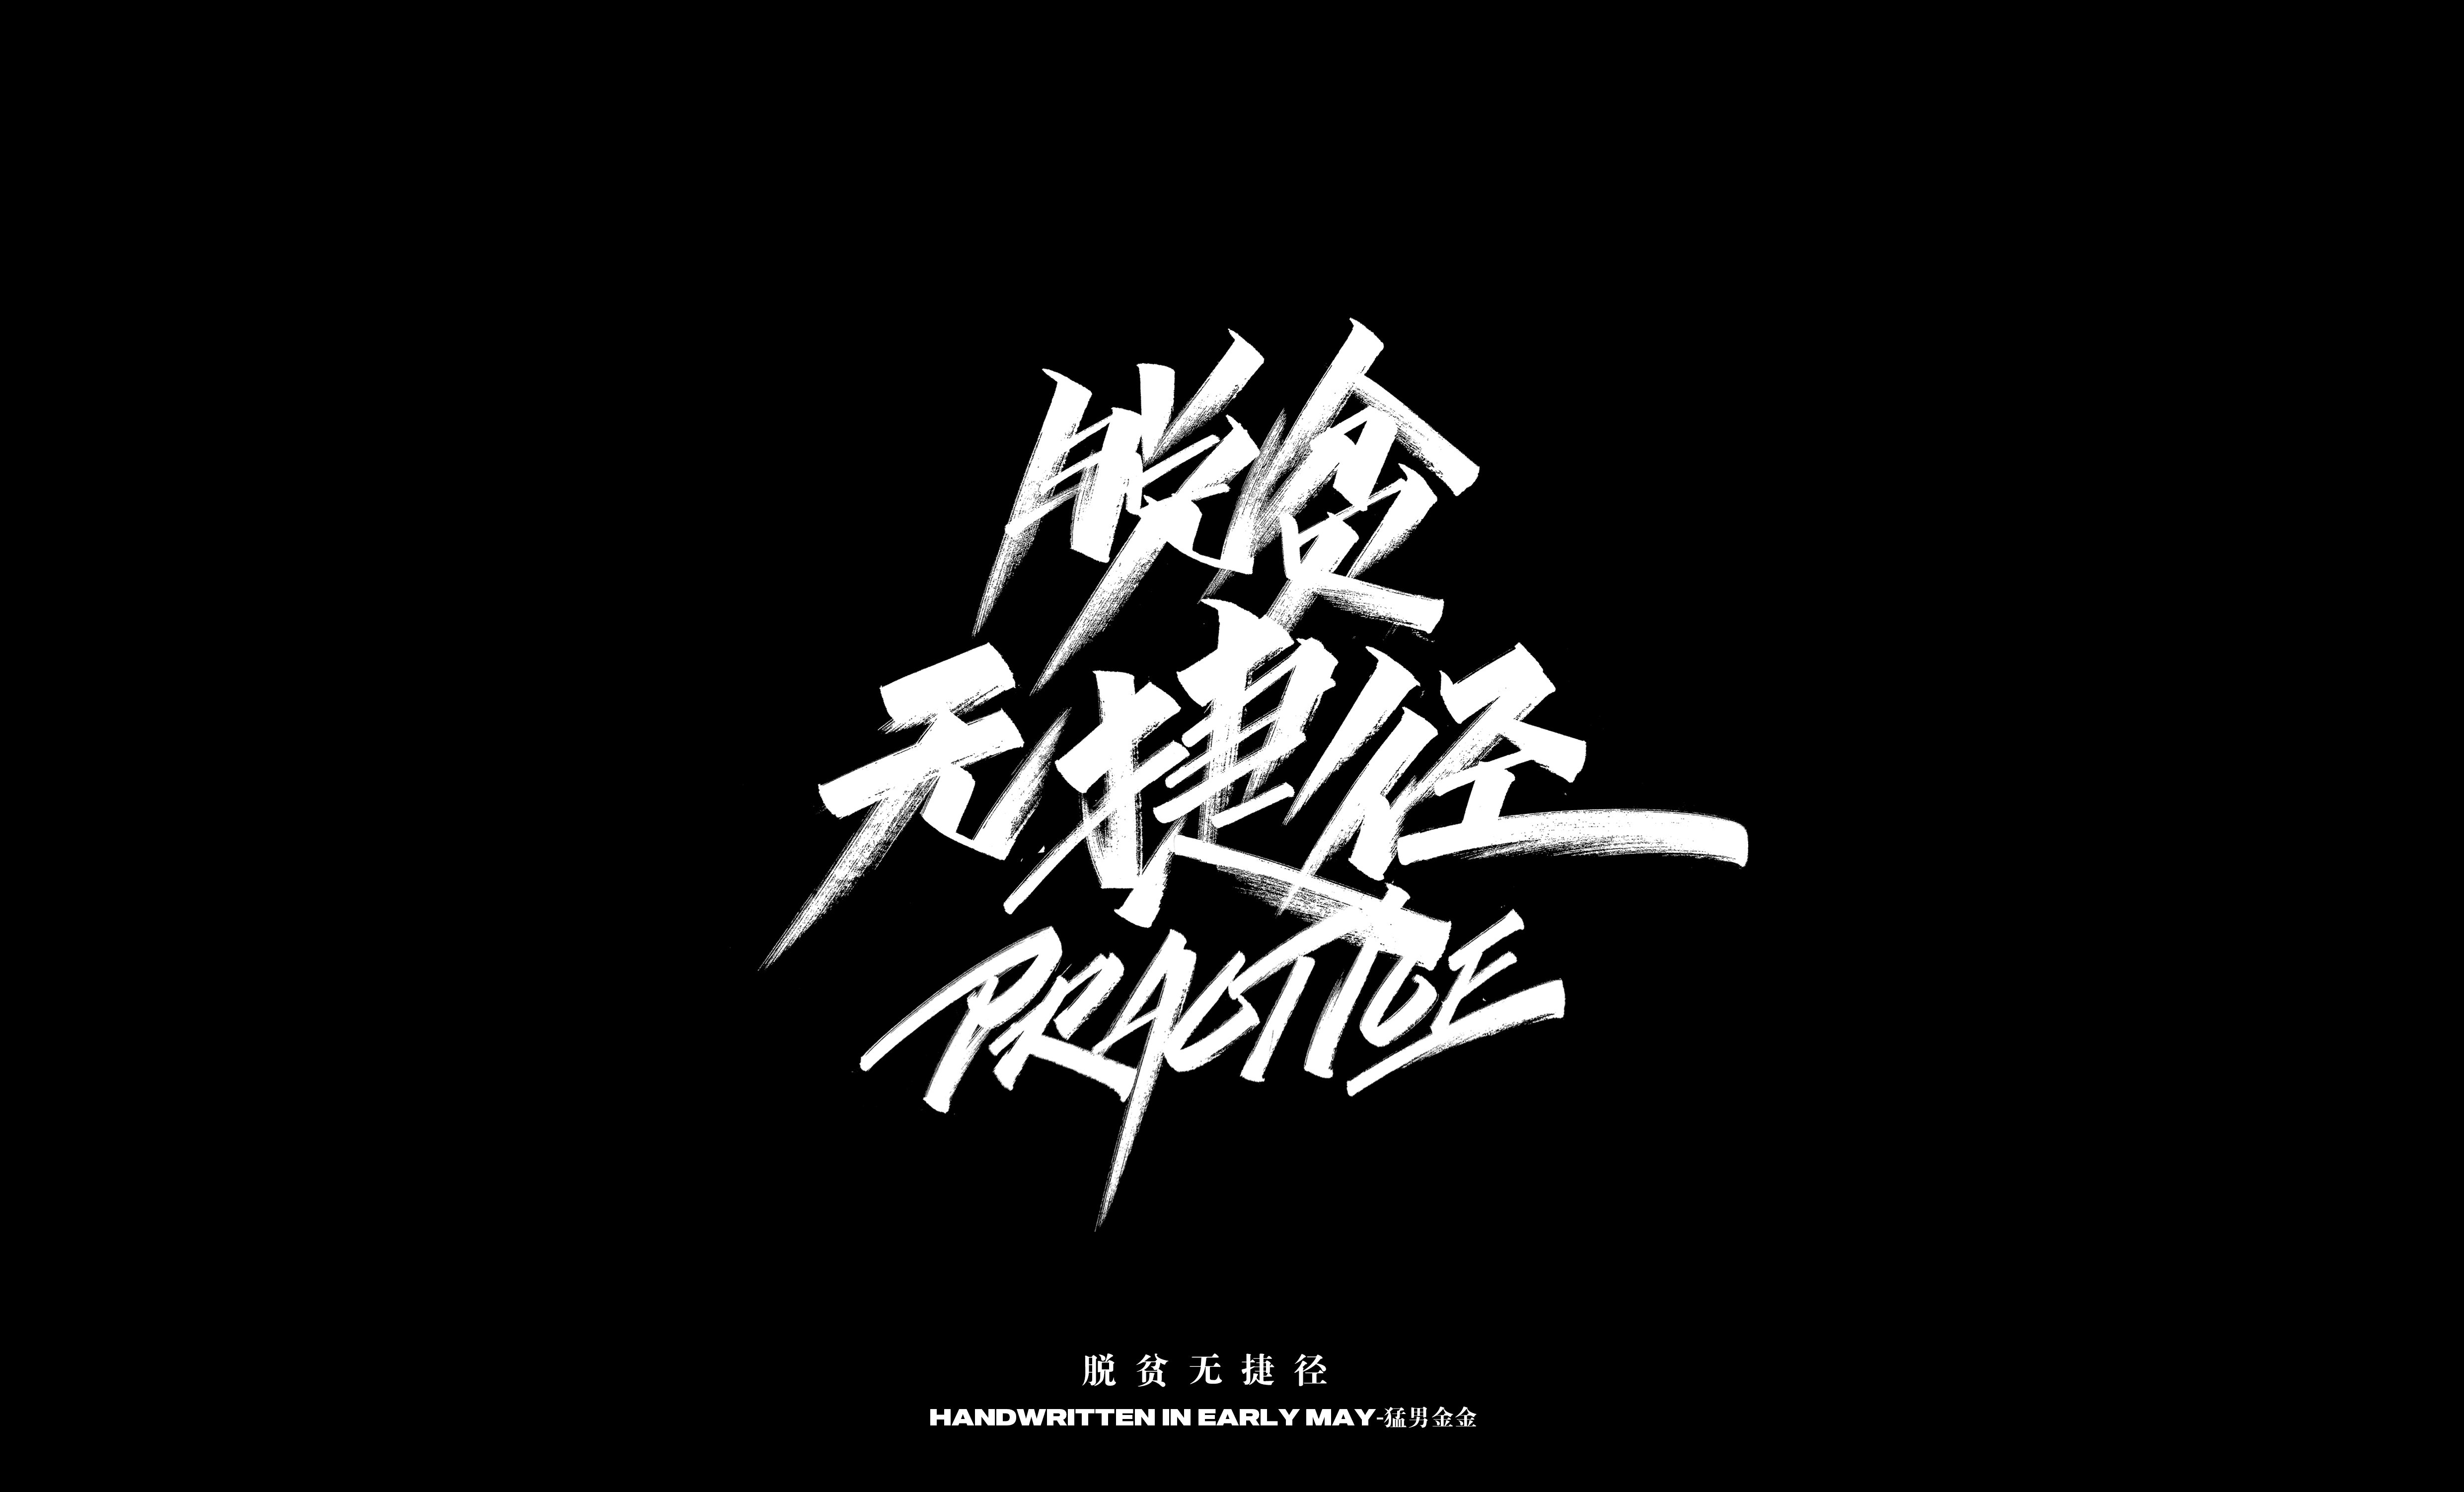 16P Collection of the latest Chinese font design schemes in 2021 #.330